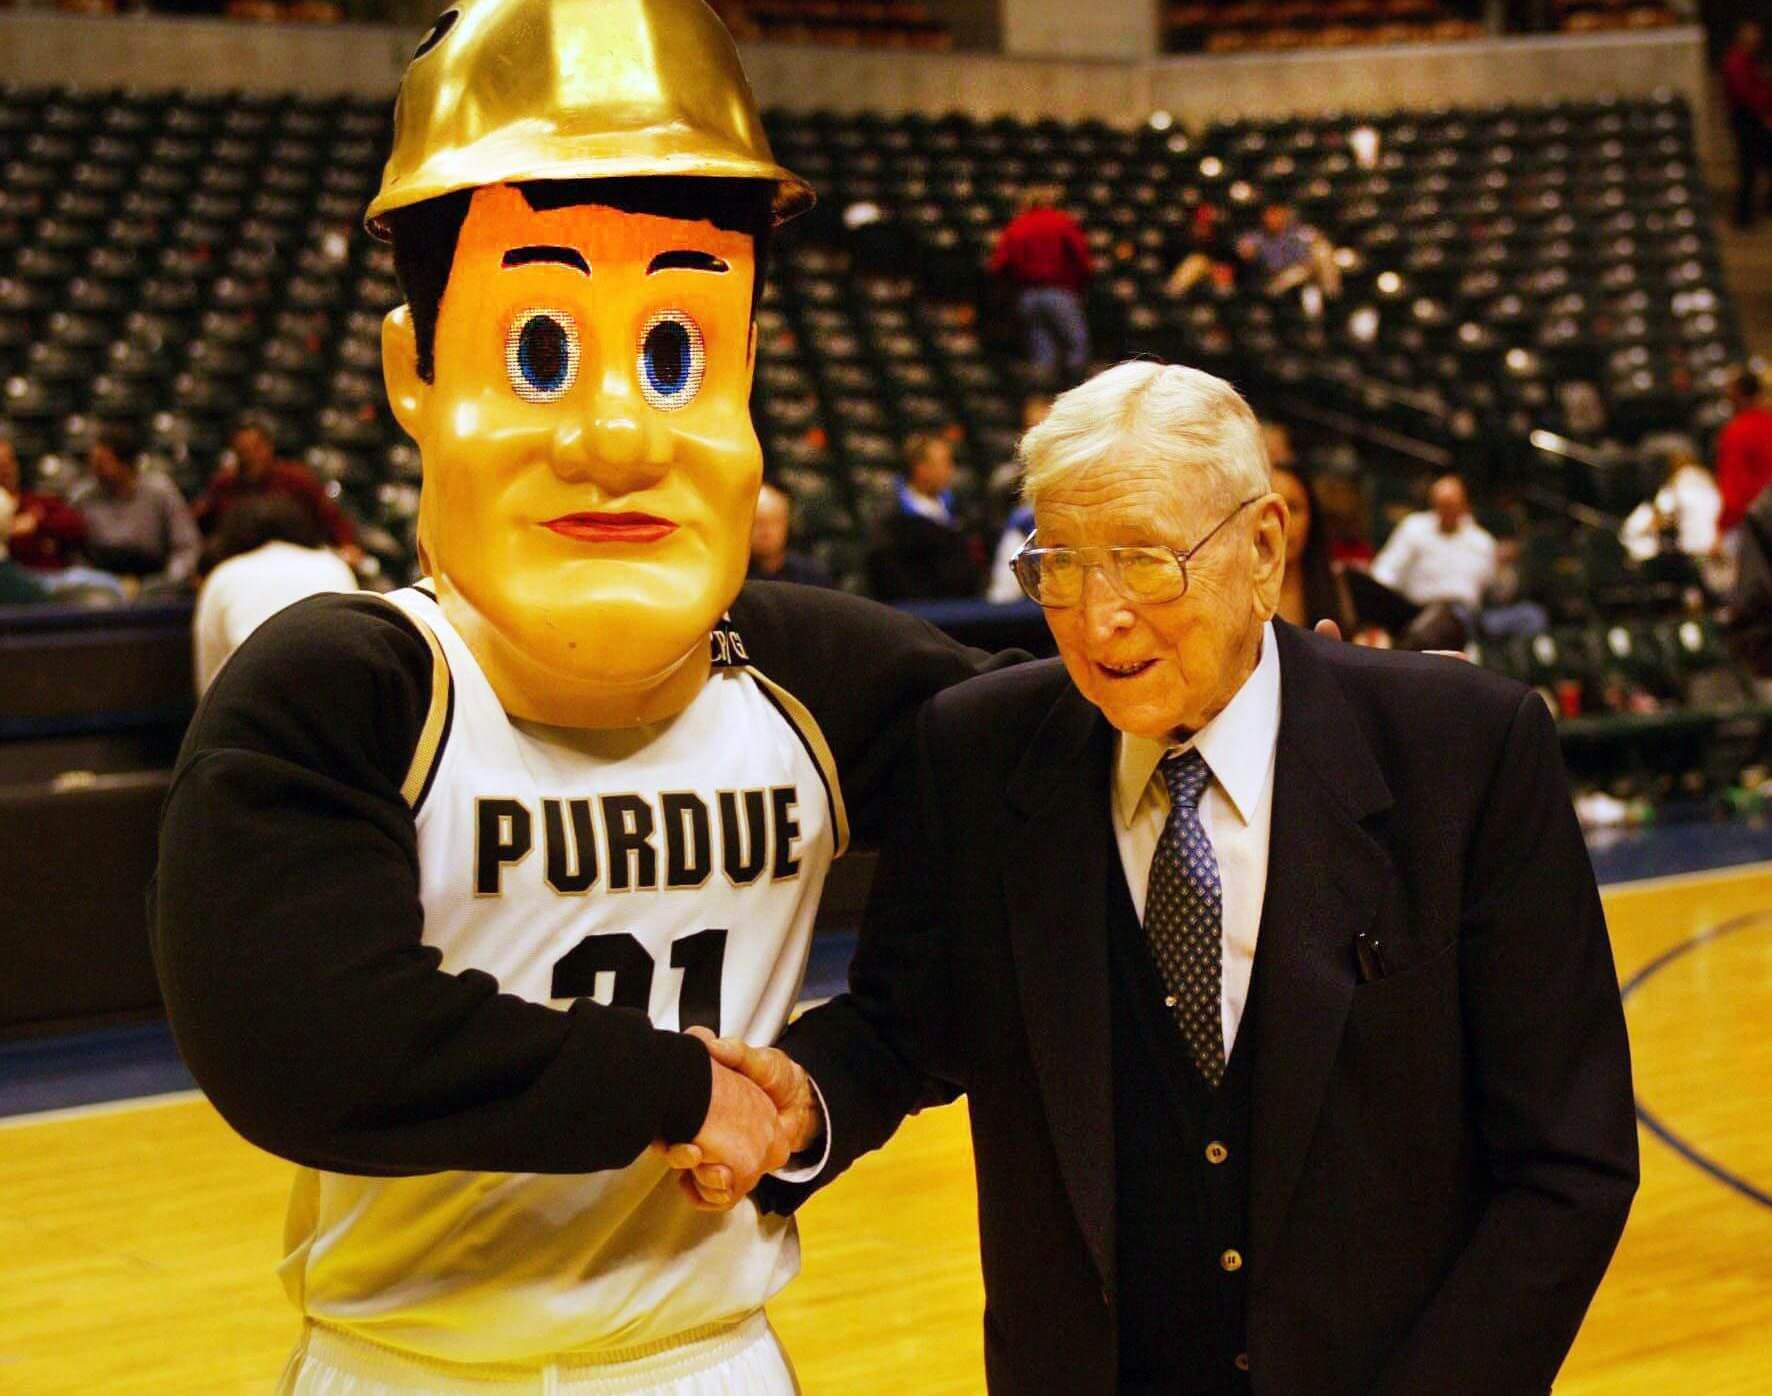 Purdue Pete and John Wooden